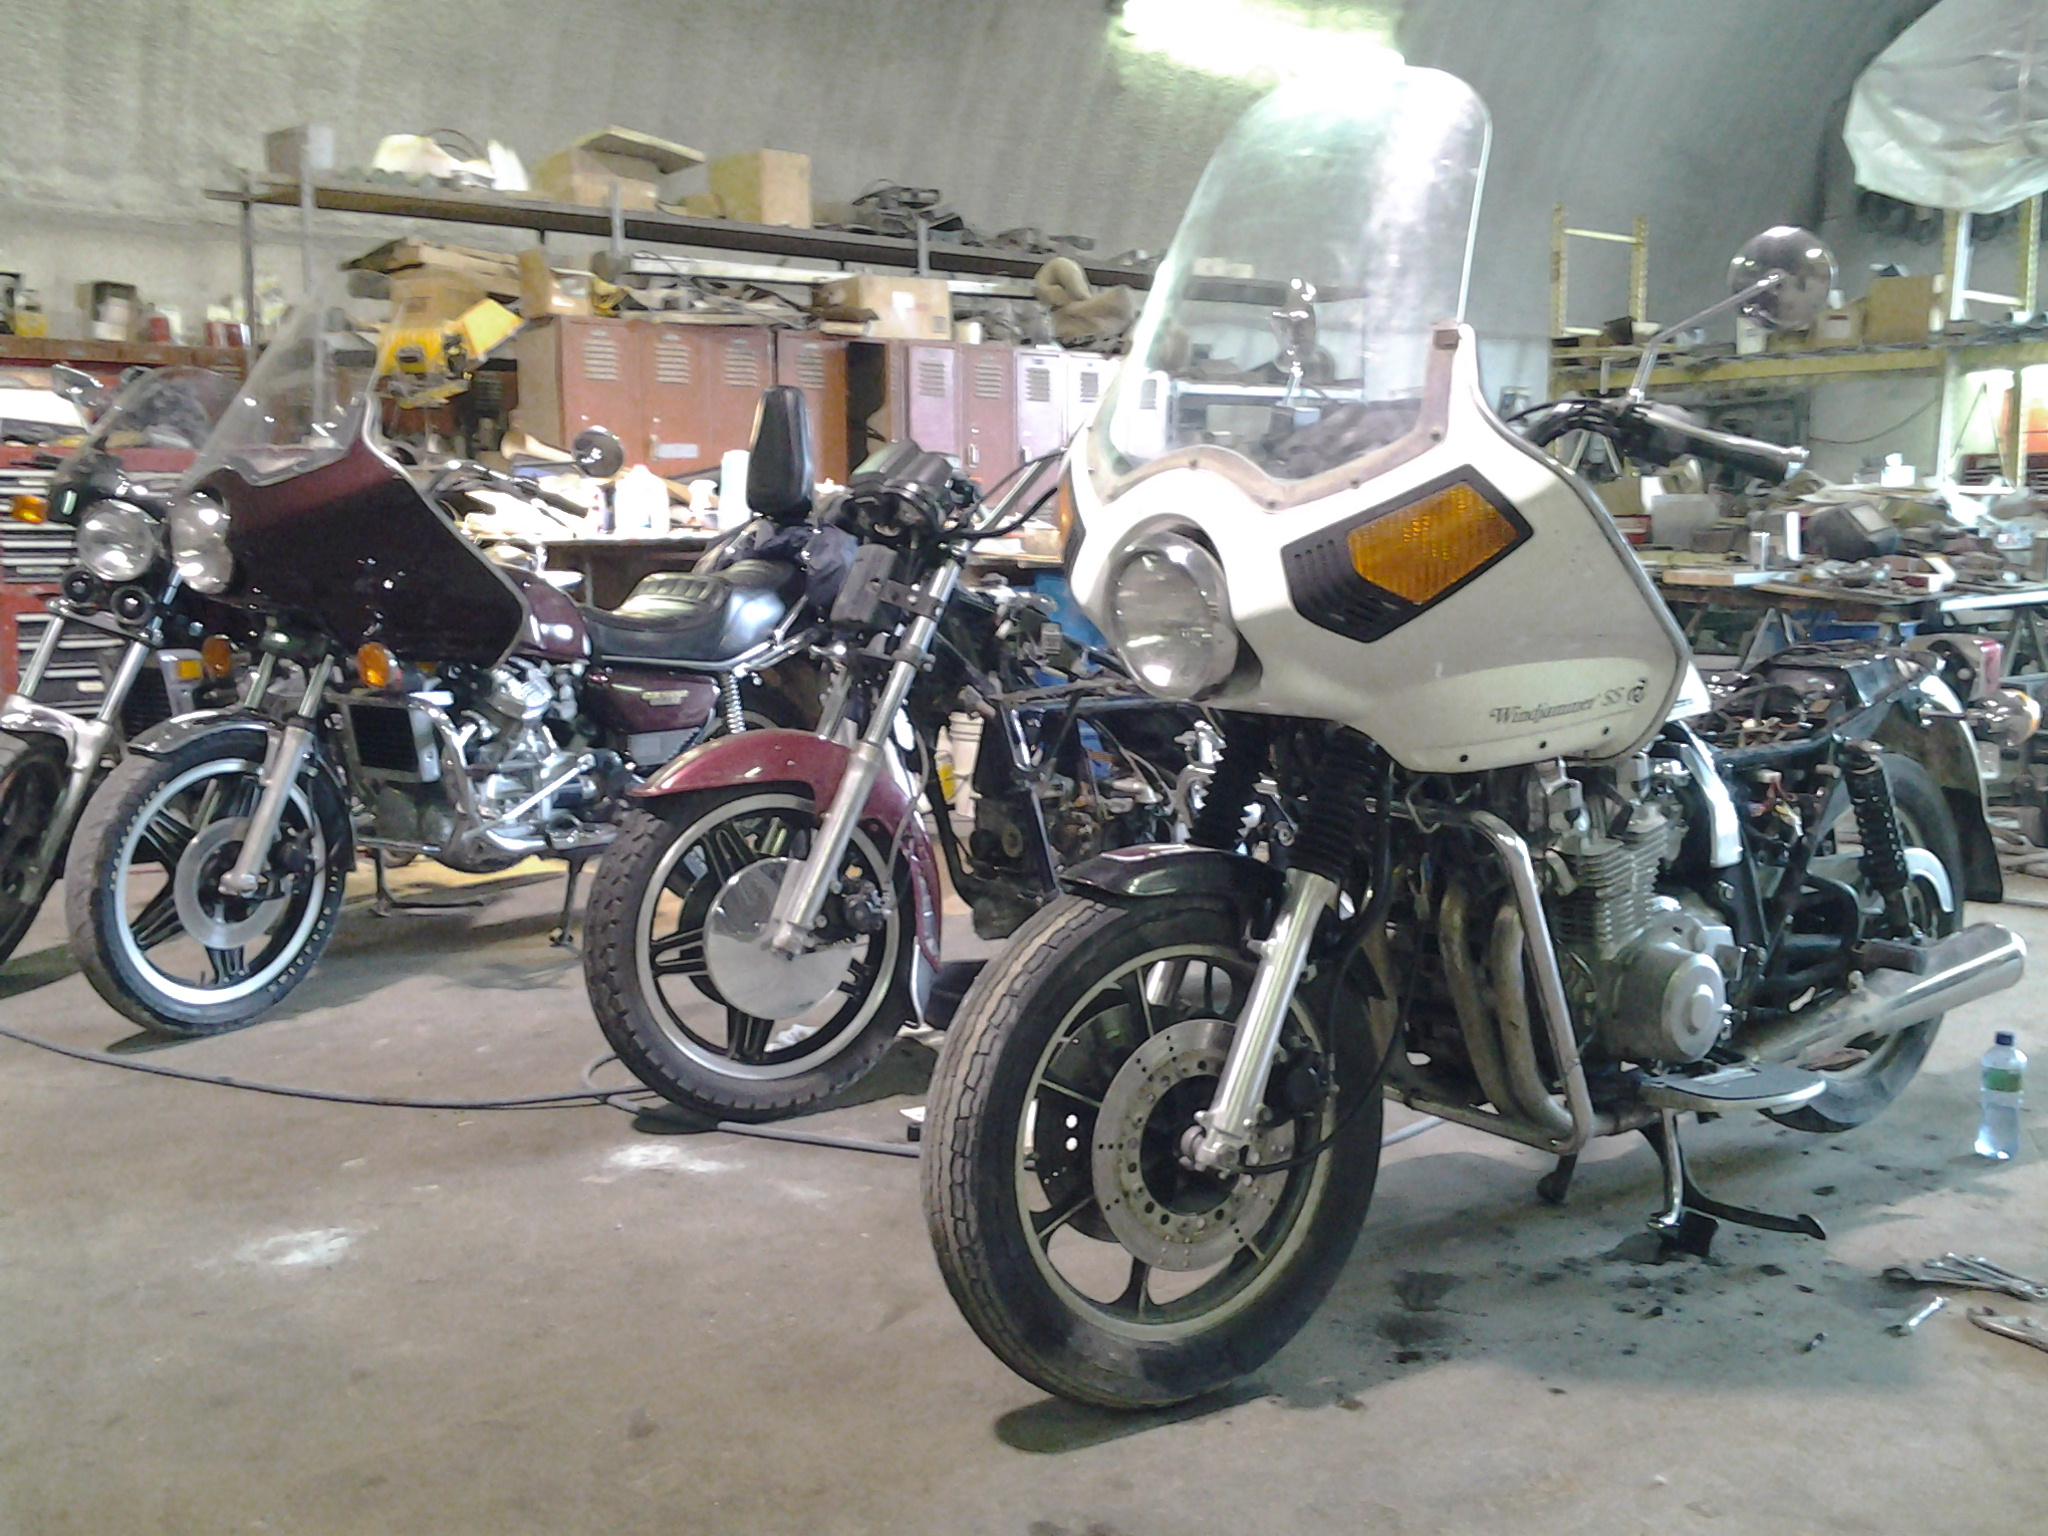 2864d1373158612 free 1981 gl 1100 interstate given me 20130706_154602 1992 kz1000 police wiring diagram wiring diagram and schematics